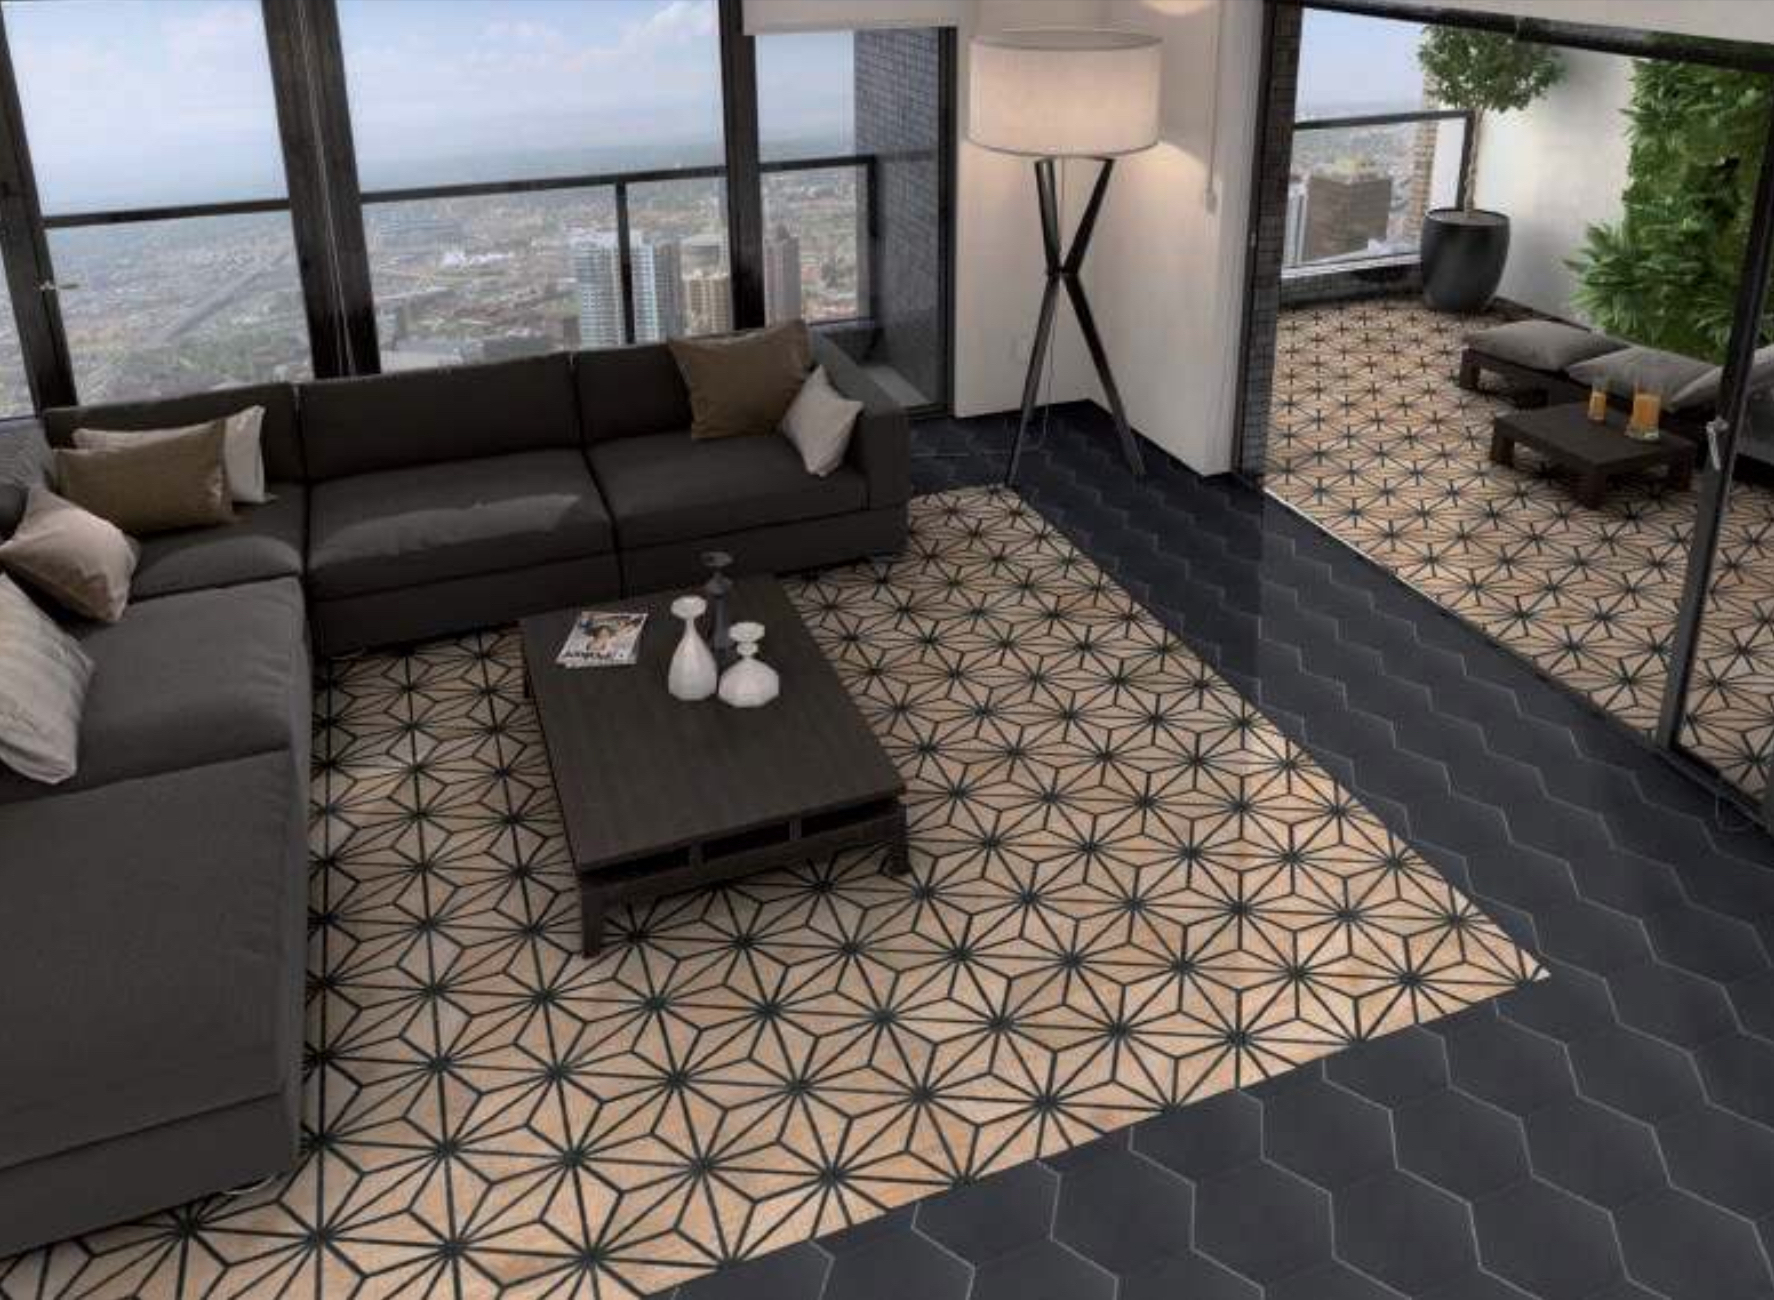 Carrelage Hexagonal Tribeca 25X22Cm pour Carrelage Sol Hexagonal